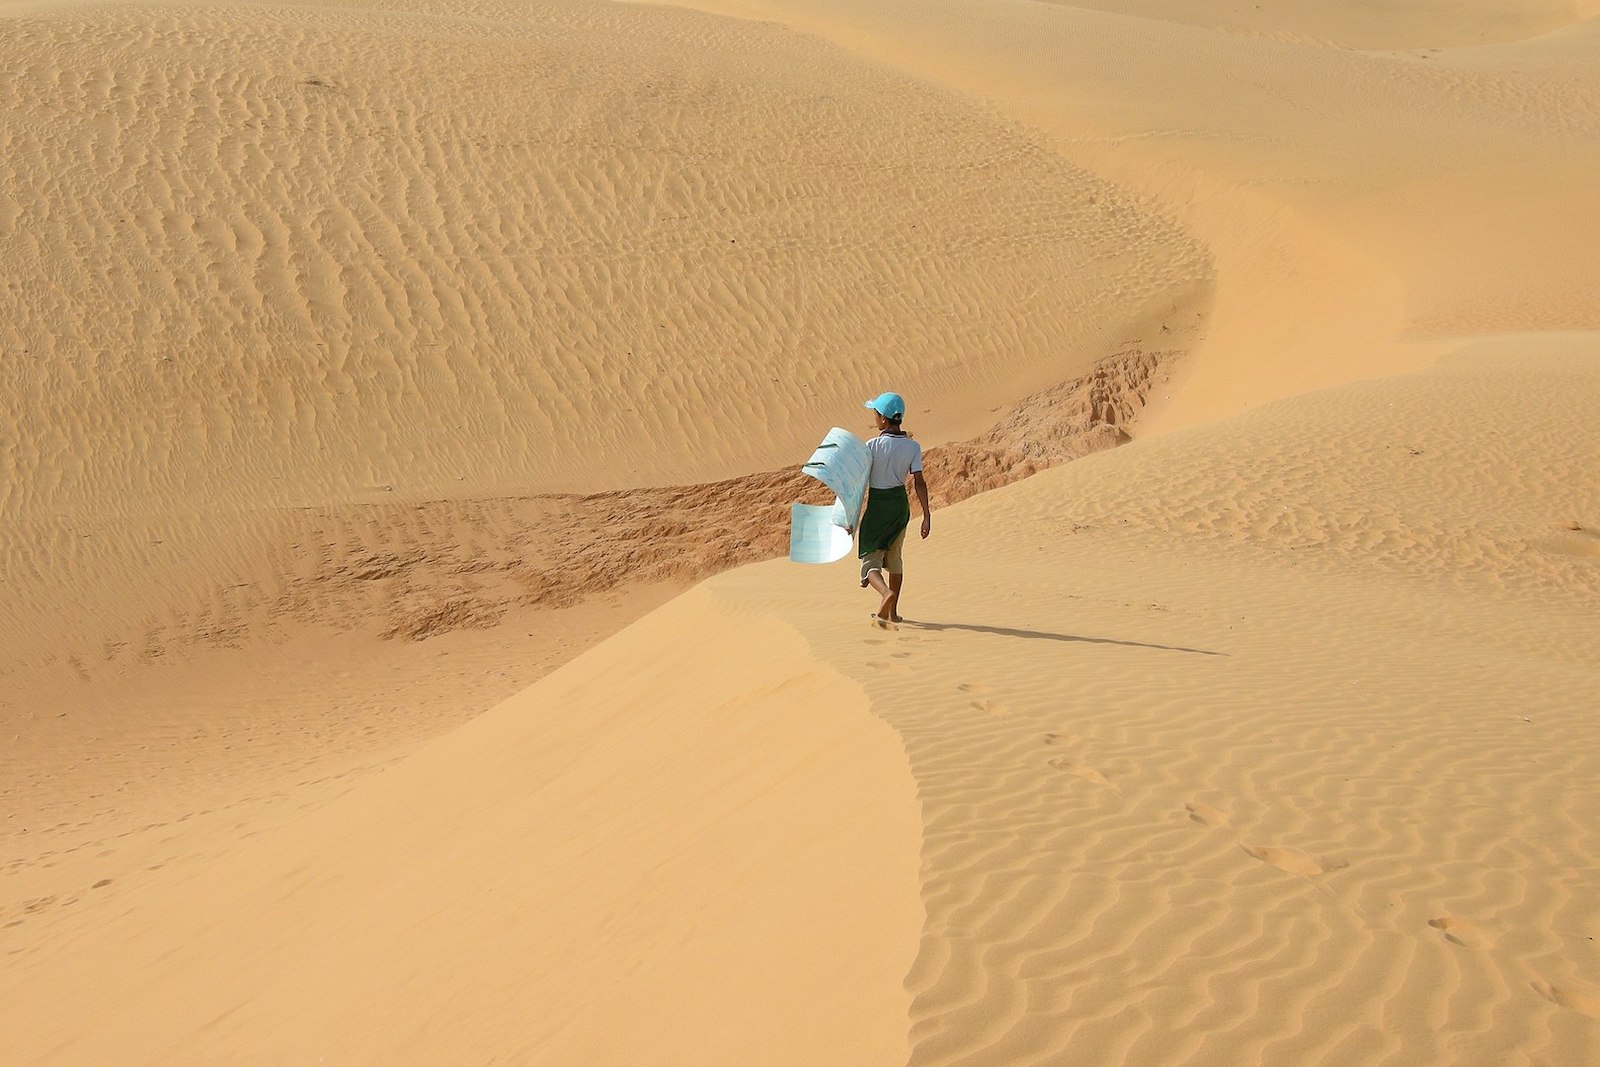 Image of a person at the sand dunes in Mui Ne, Vietnam.